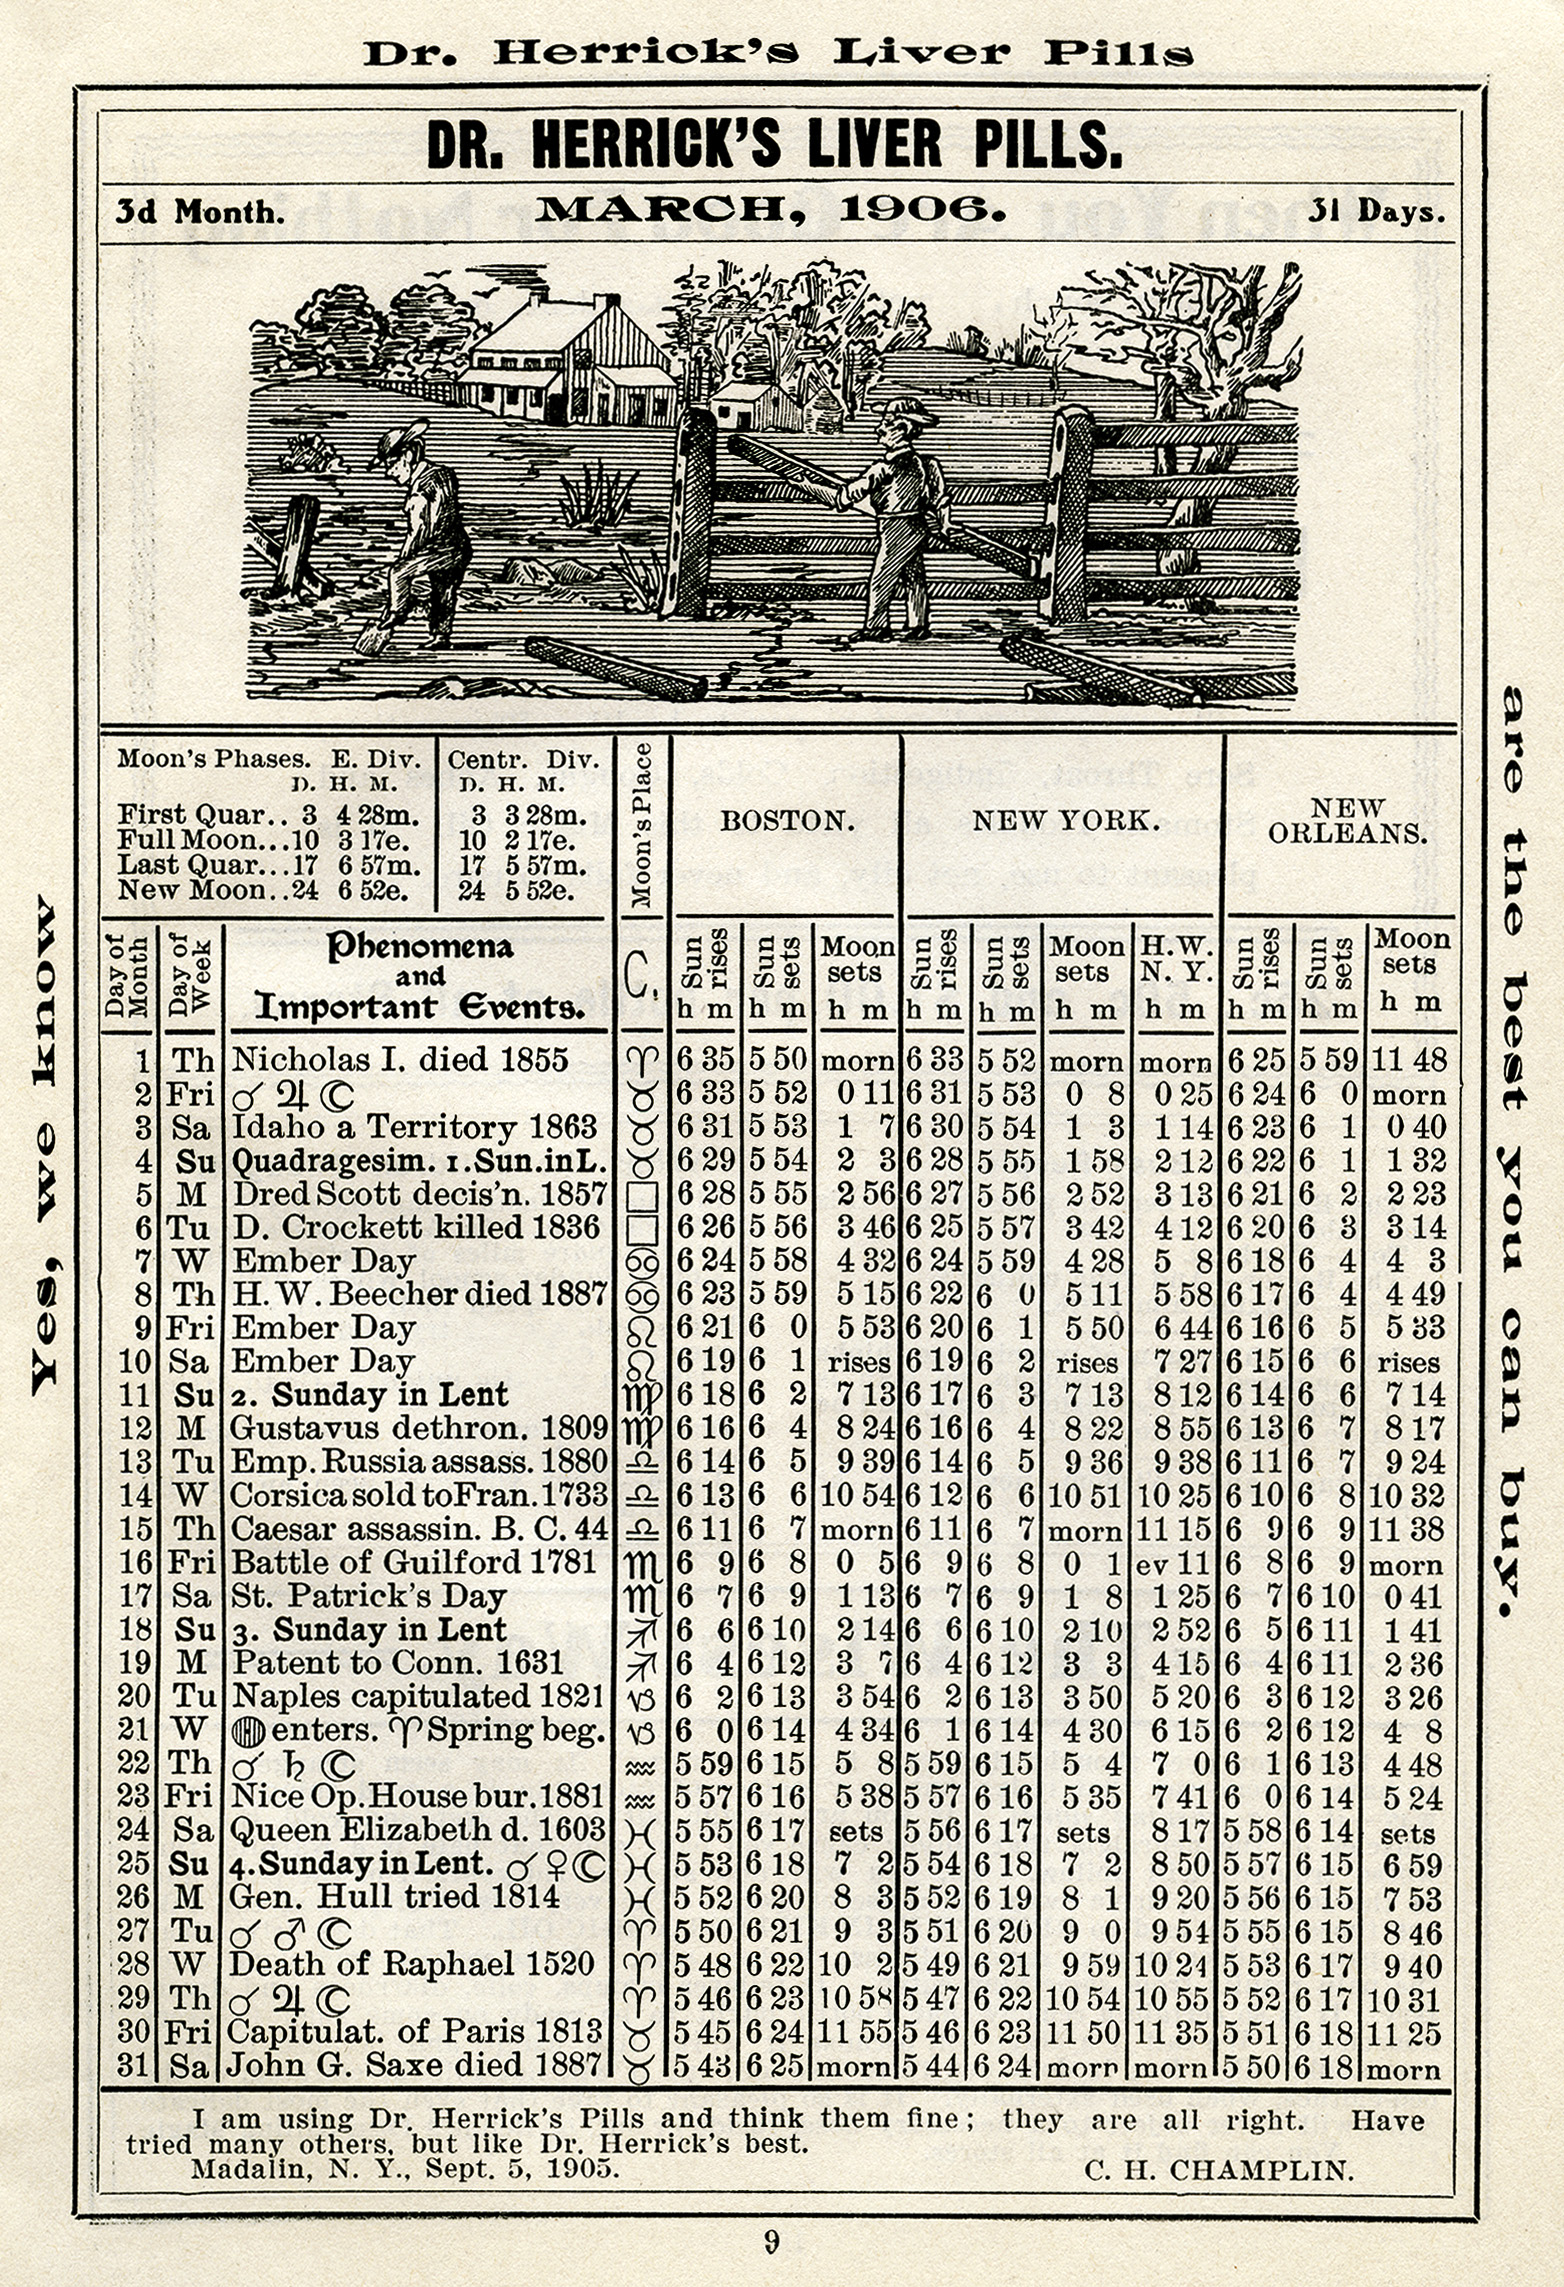 antique almanac, free digital almanac page, old book page, March 1906, herricks almanac